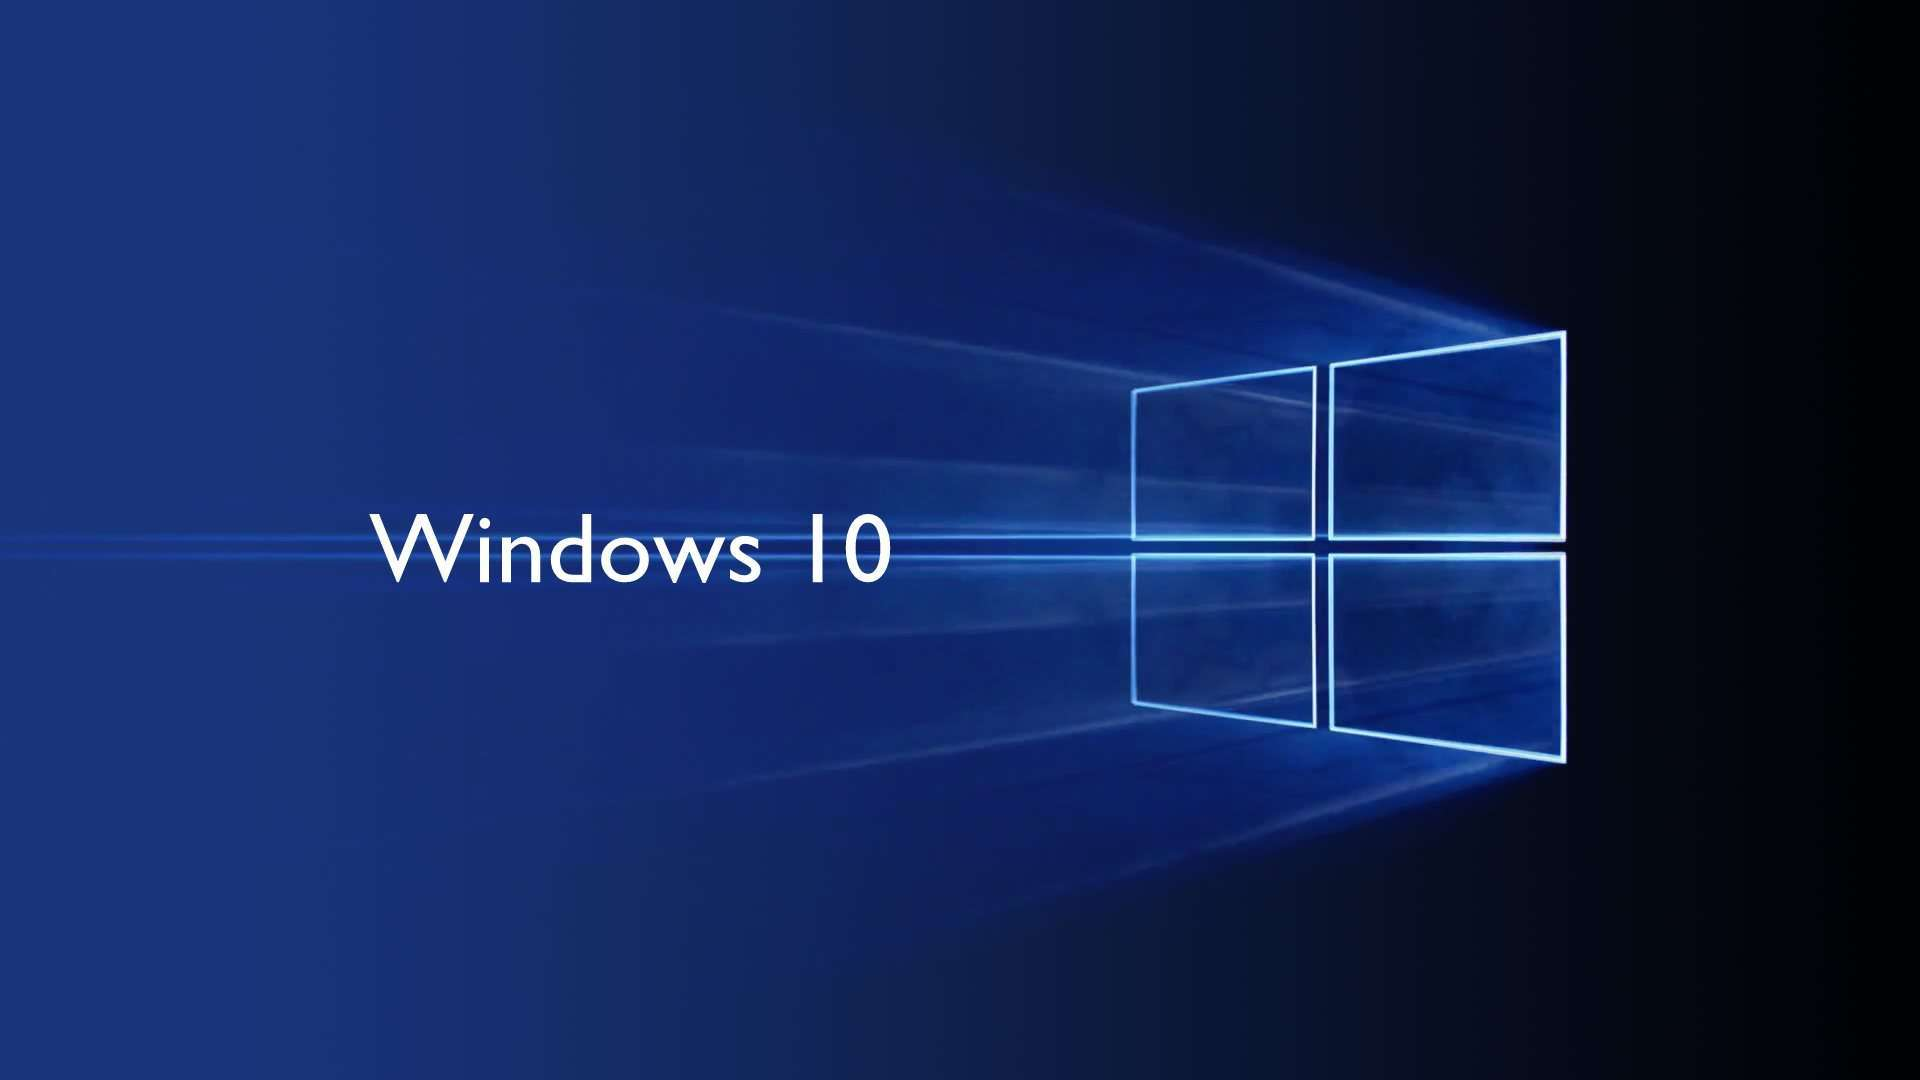 Windows 95 Wallpaper 1080 Related Keywords Suggestions